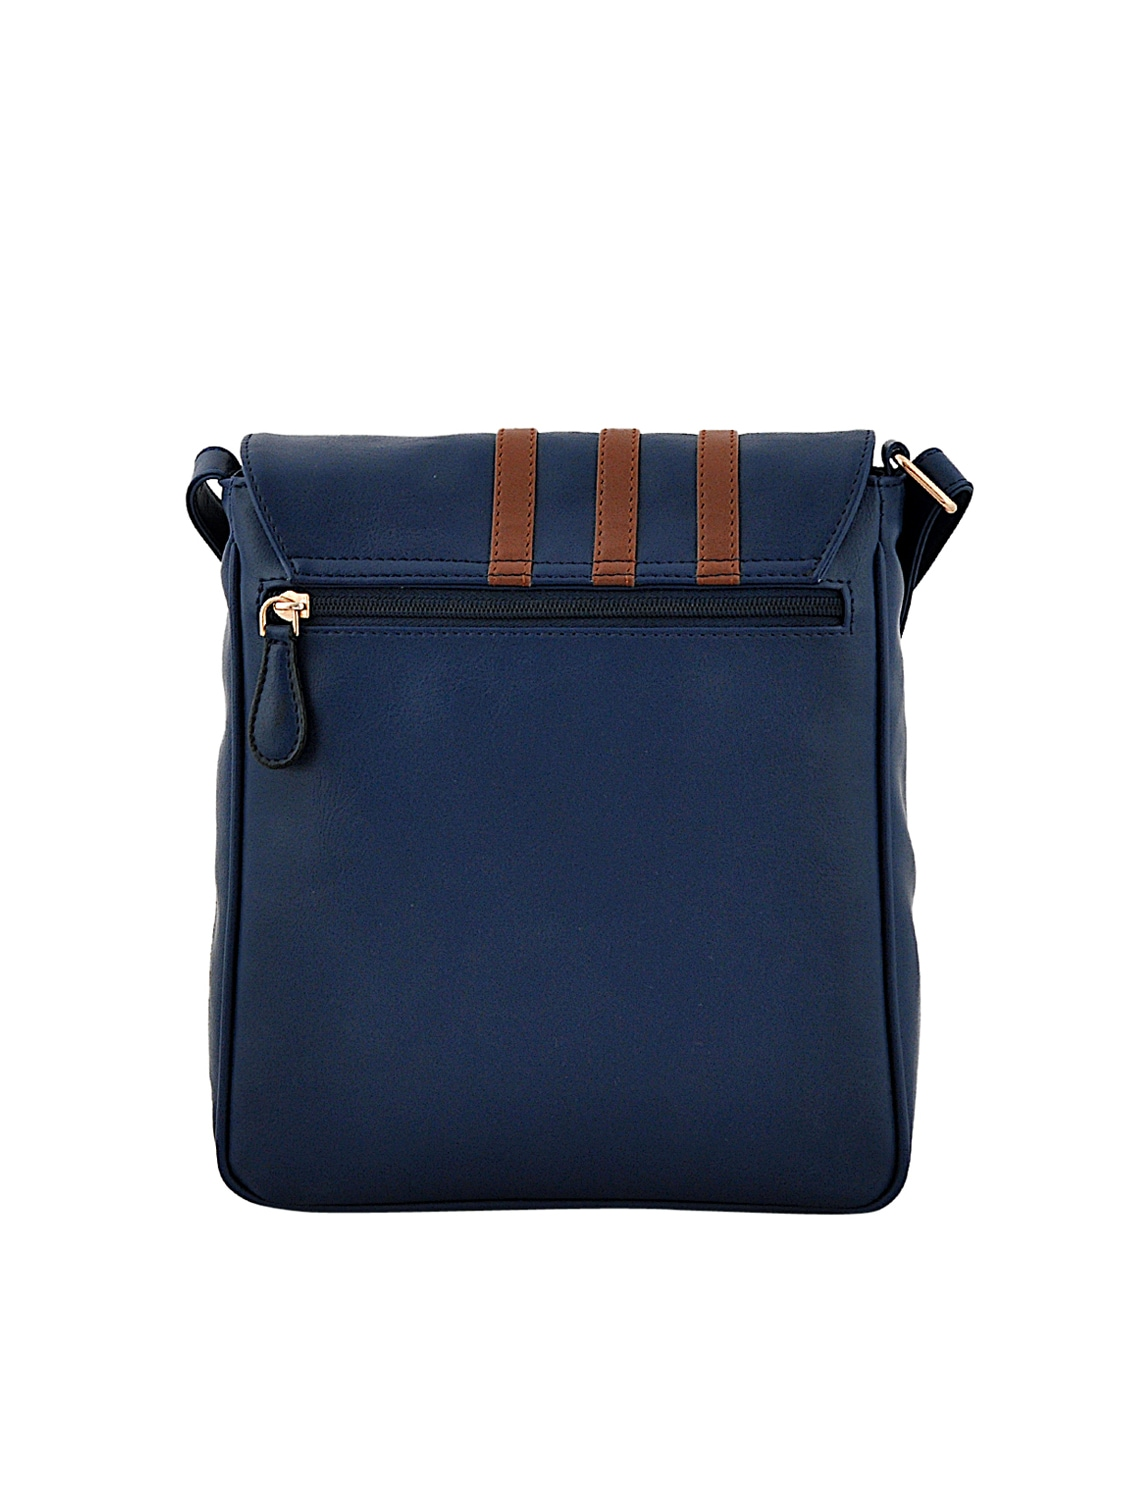 Buy Blue Leatherette (pu) Messenger Sling Bag by Daphne - Online shopping  for Sling Bags in India  93798e5d5d015